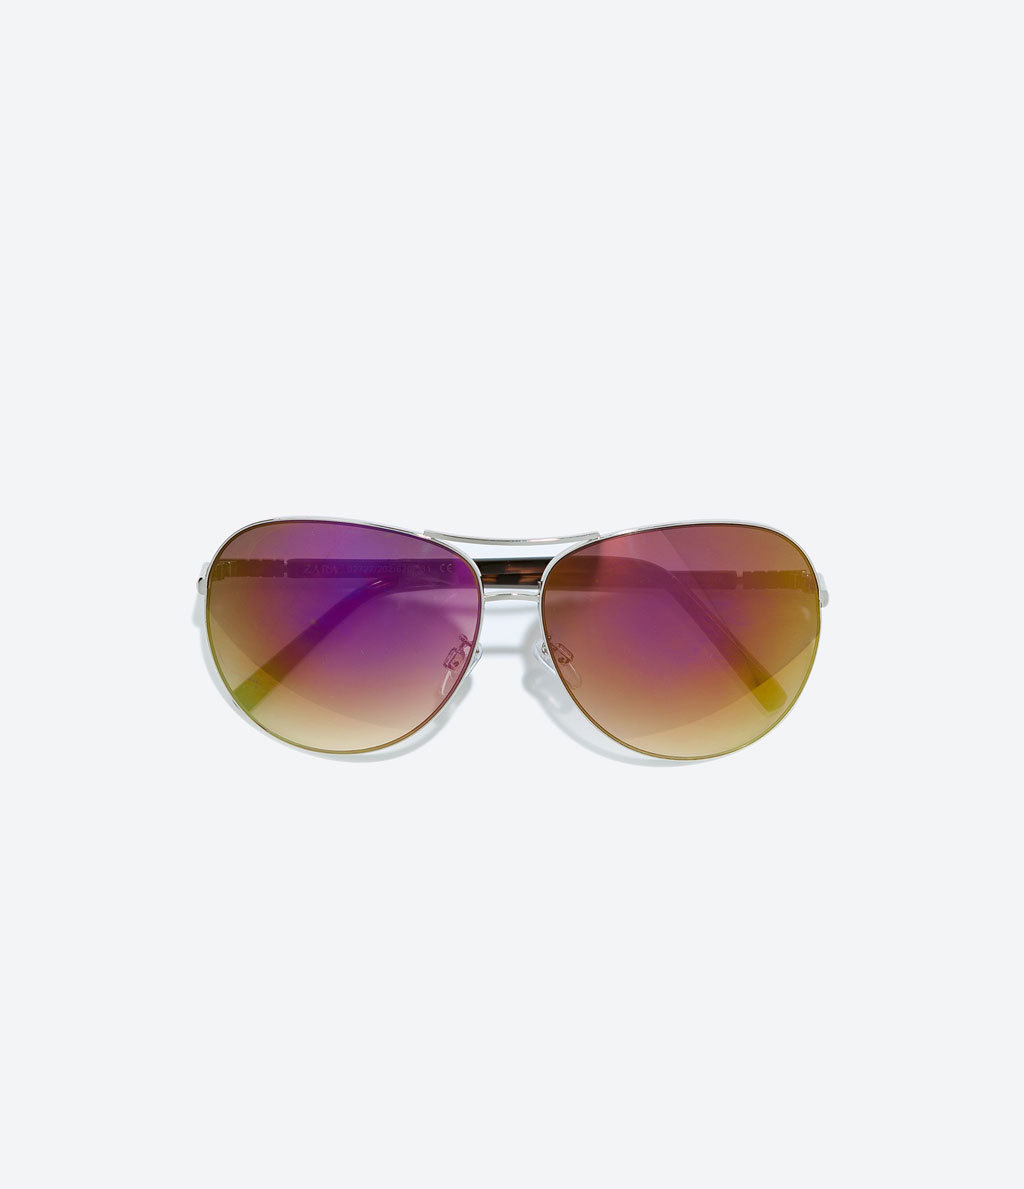 Pink Mirrored Sunglasses - predominant colour: magenta; secondary colour: silver; occasions: casual, holiday; style: aviator; size: standard; material: chain/metal; pattern: plain; finish: plain; season: a/w 2014